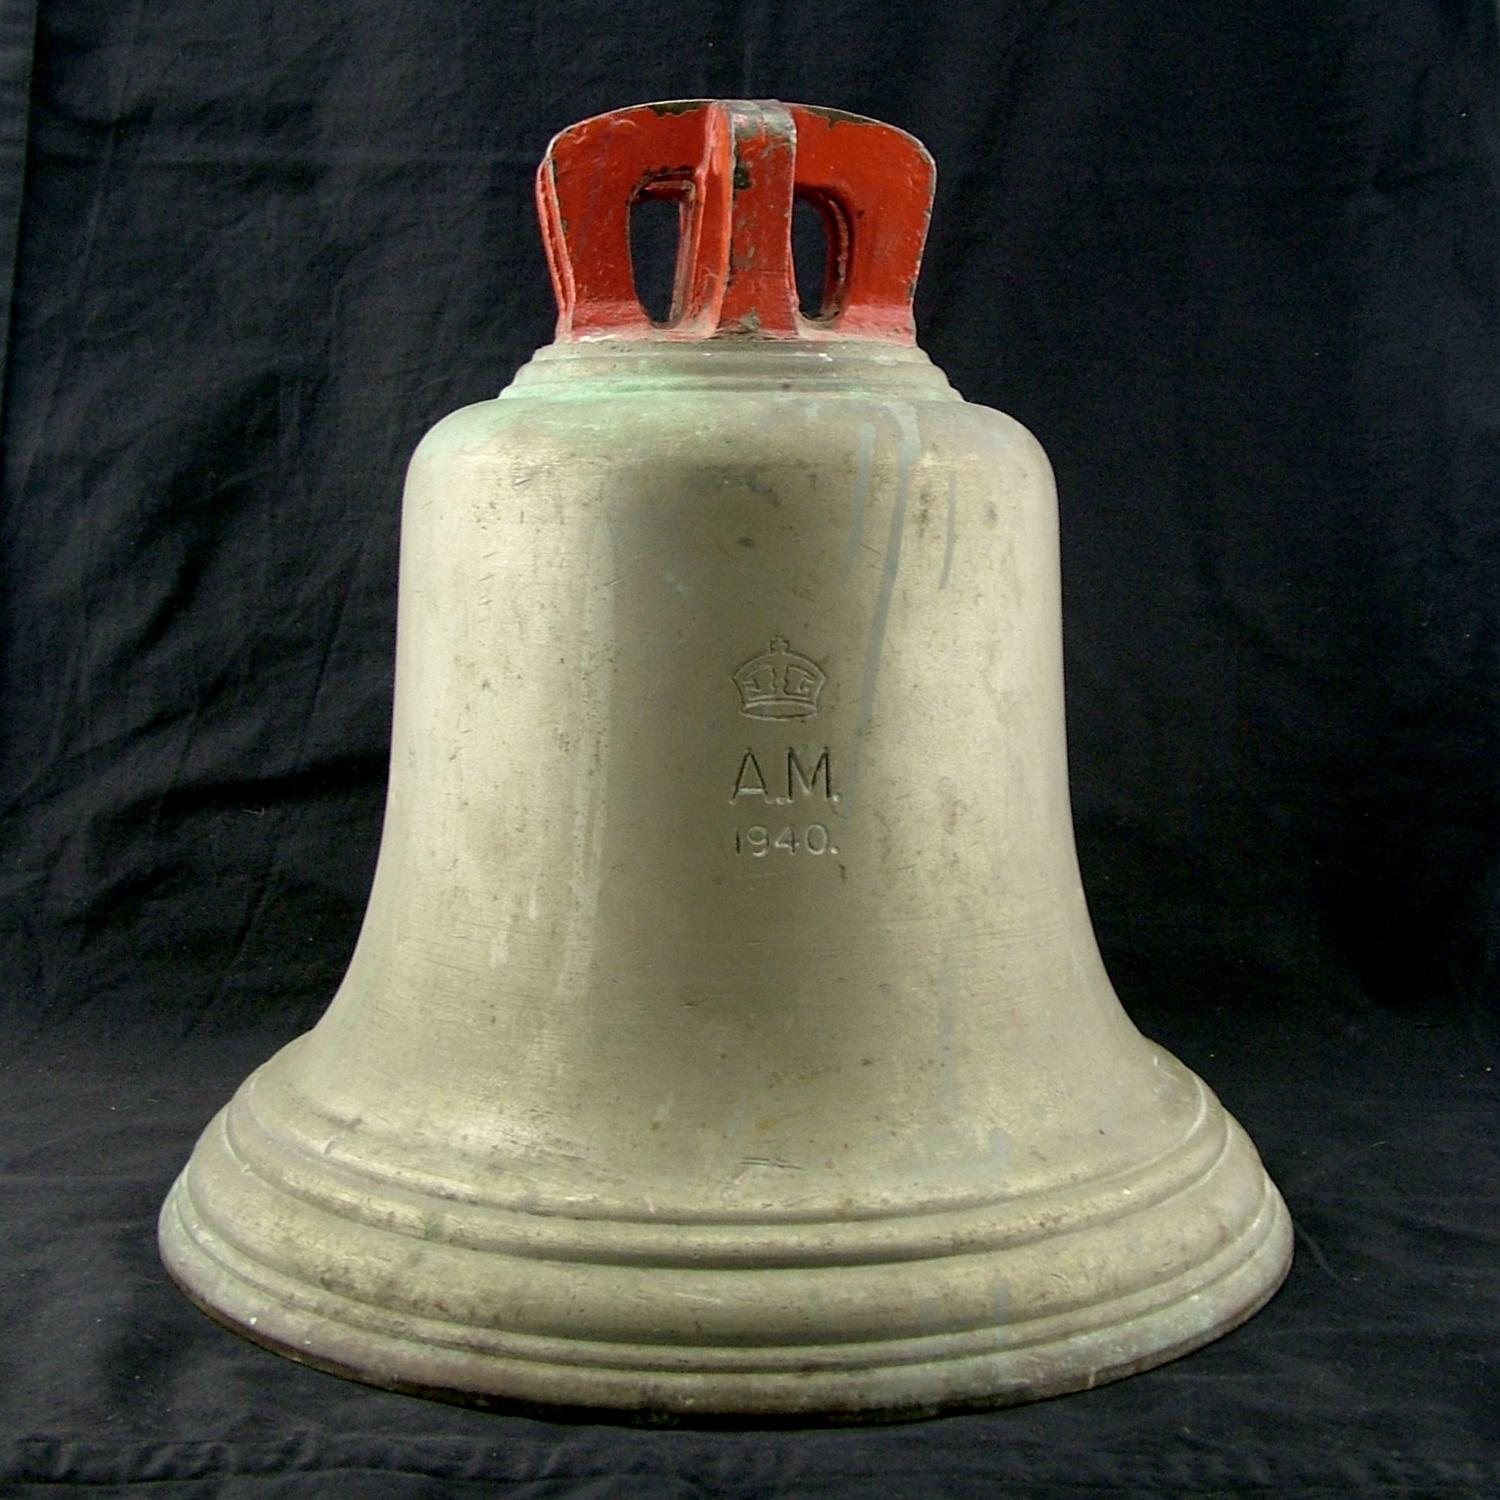 RAF station 'Scramble' bell, 1940